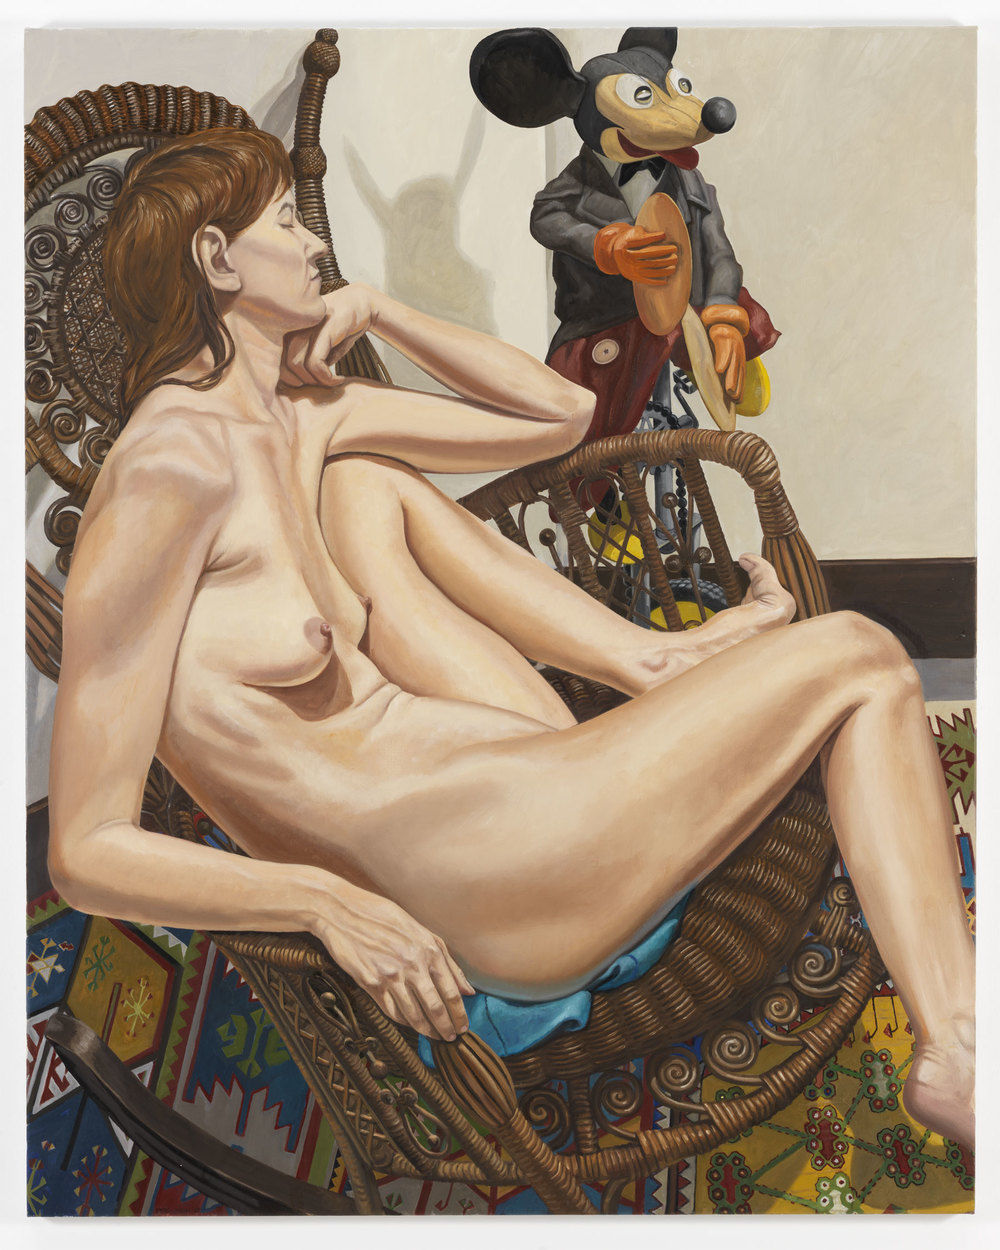 Model with Mickey Mouse on Unicycle and Whicker Chair , 2009 Oil on canvas 60 x 48 inches